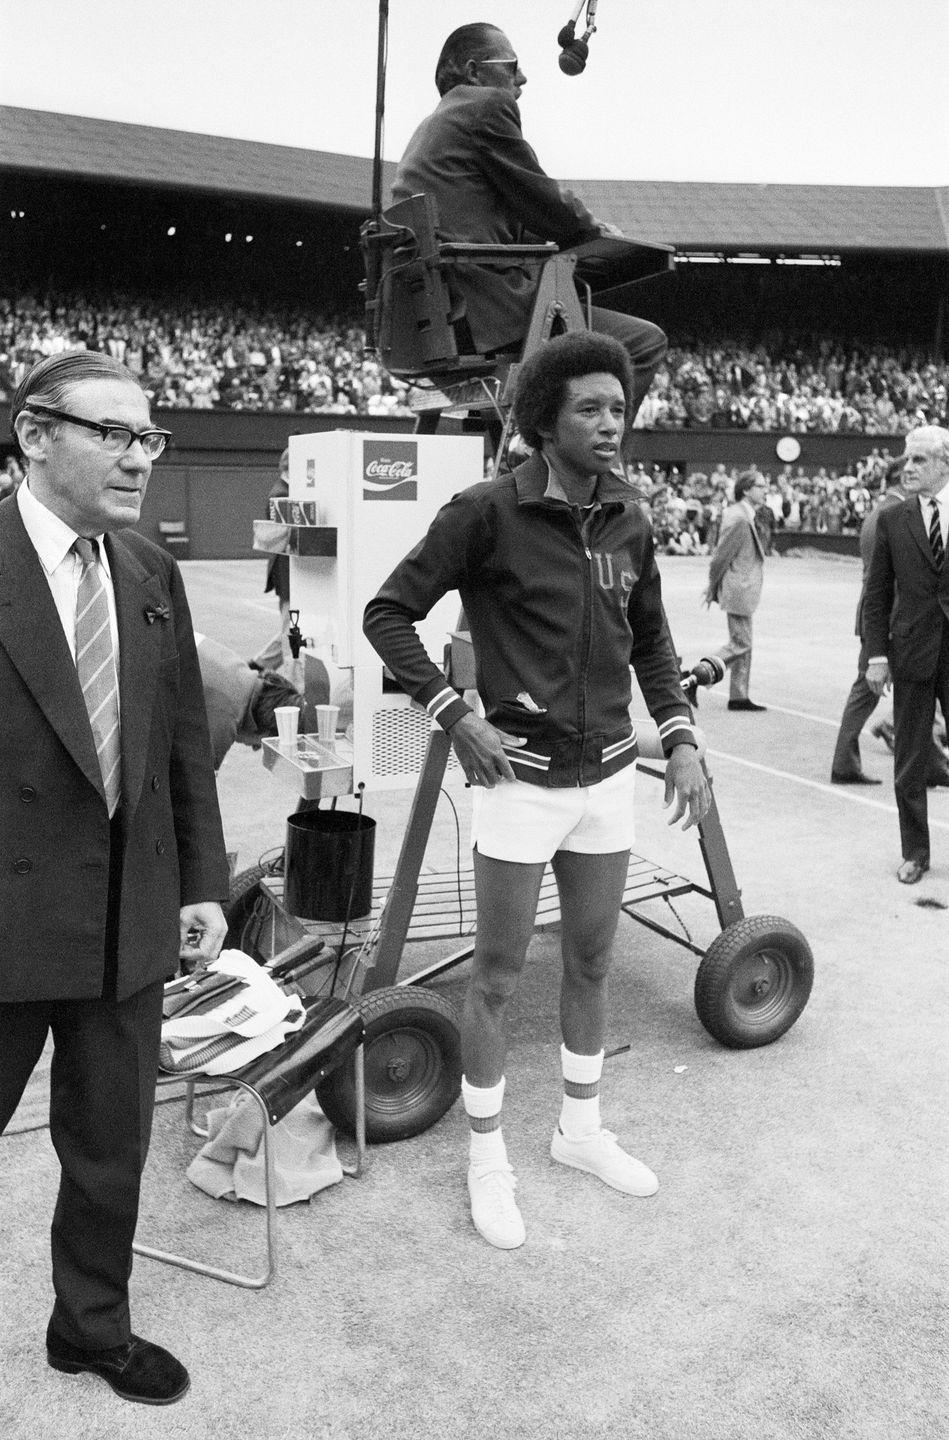 <p>Arthur Ashe after his victory against defending champion Jimmy Connors in the 1975 Wimbledon final.</p>